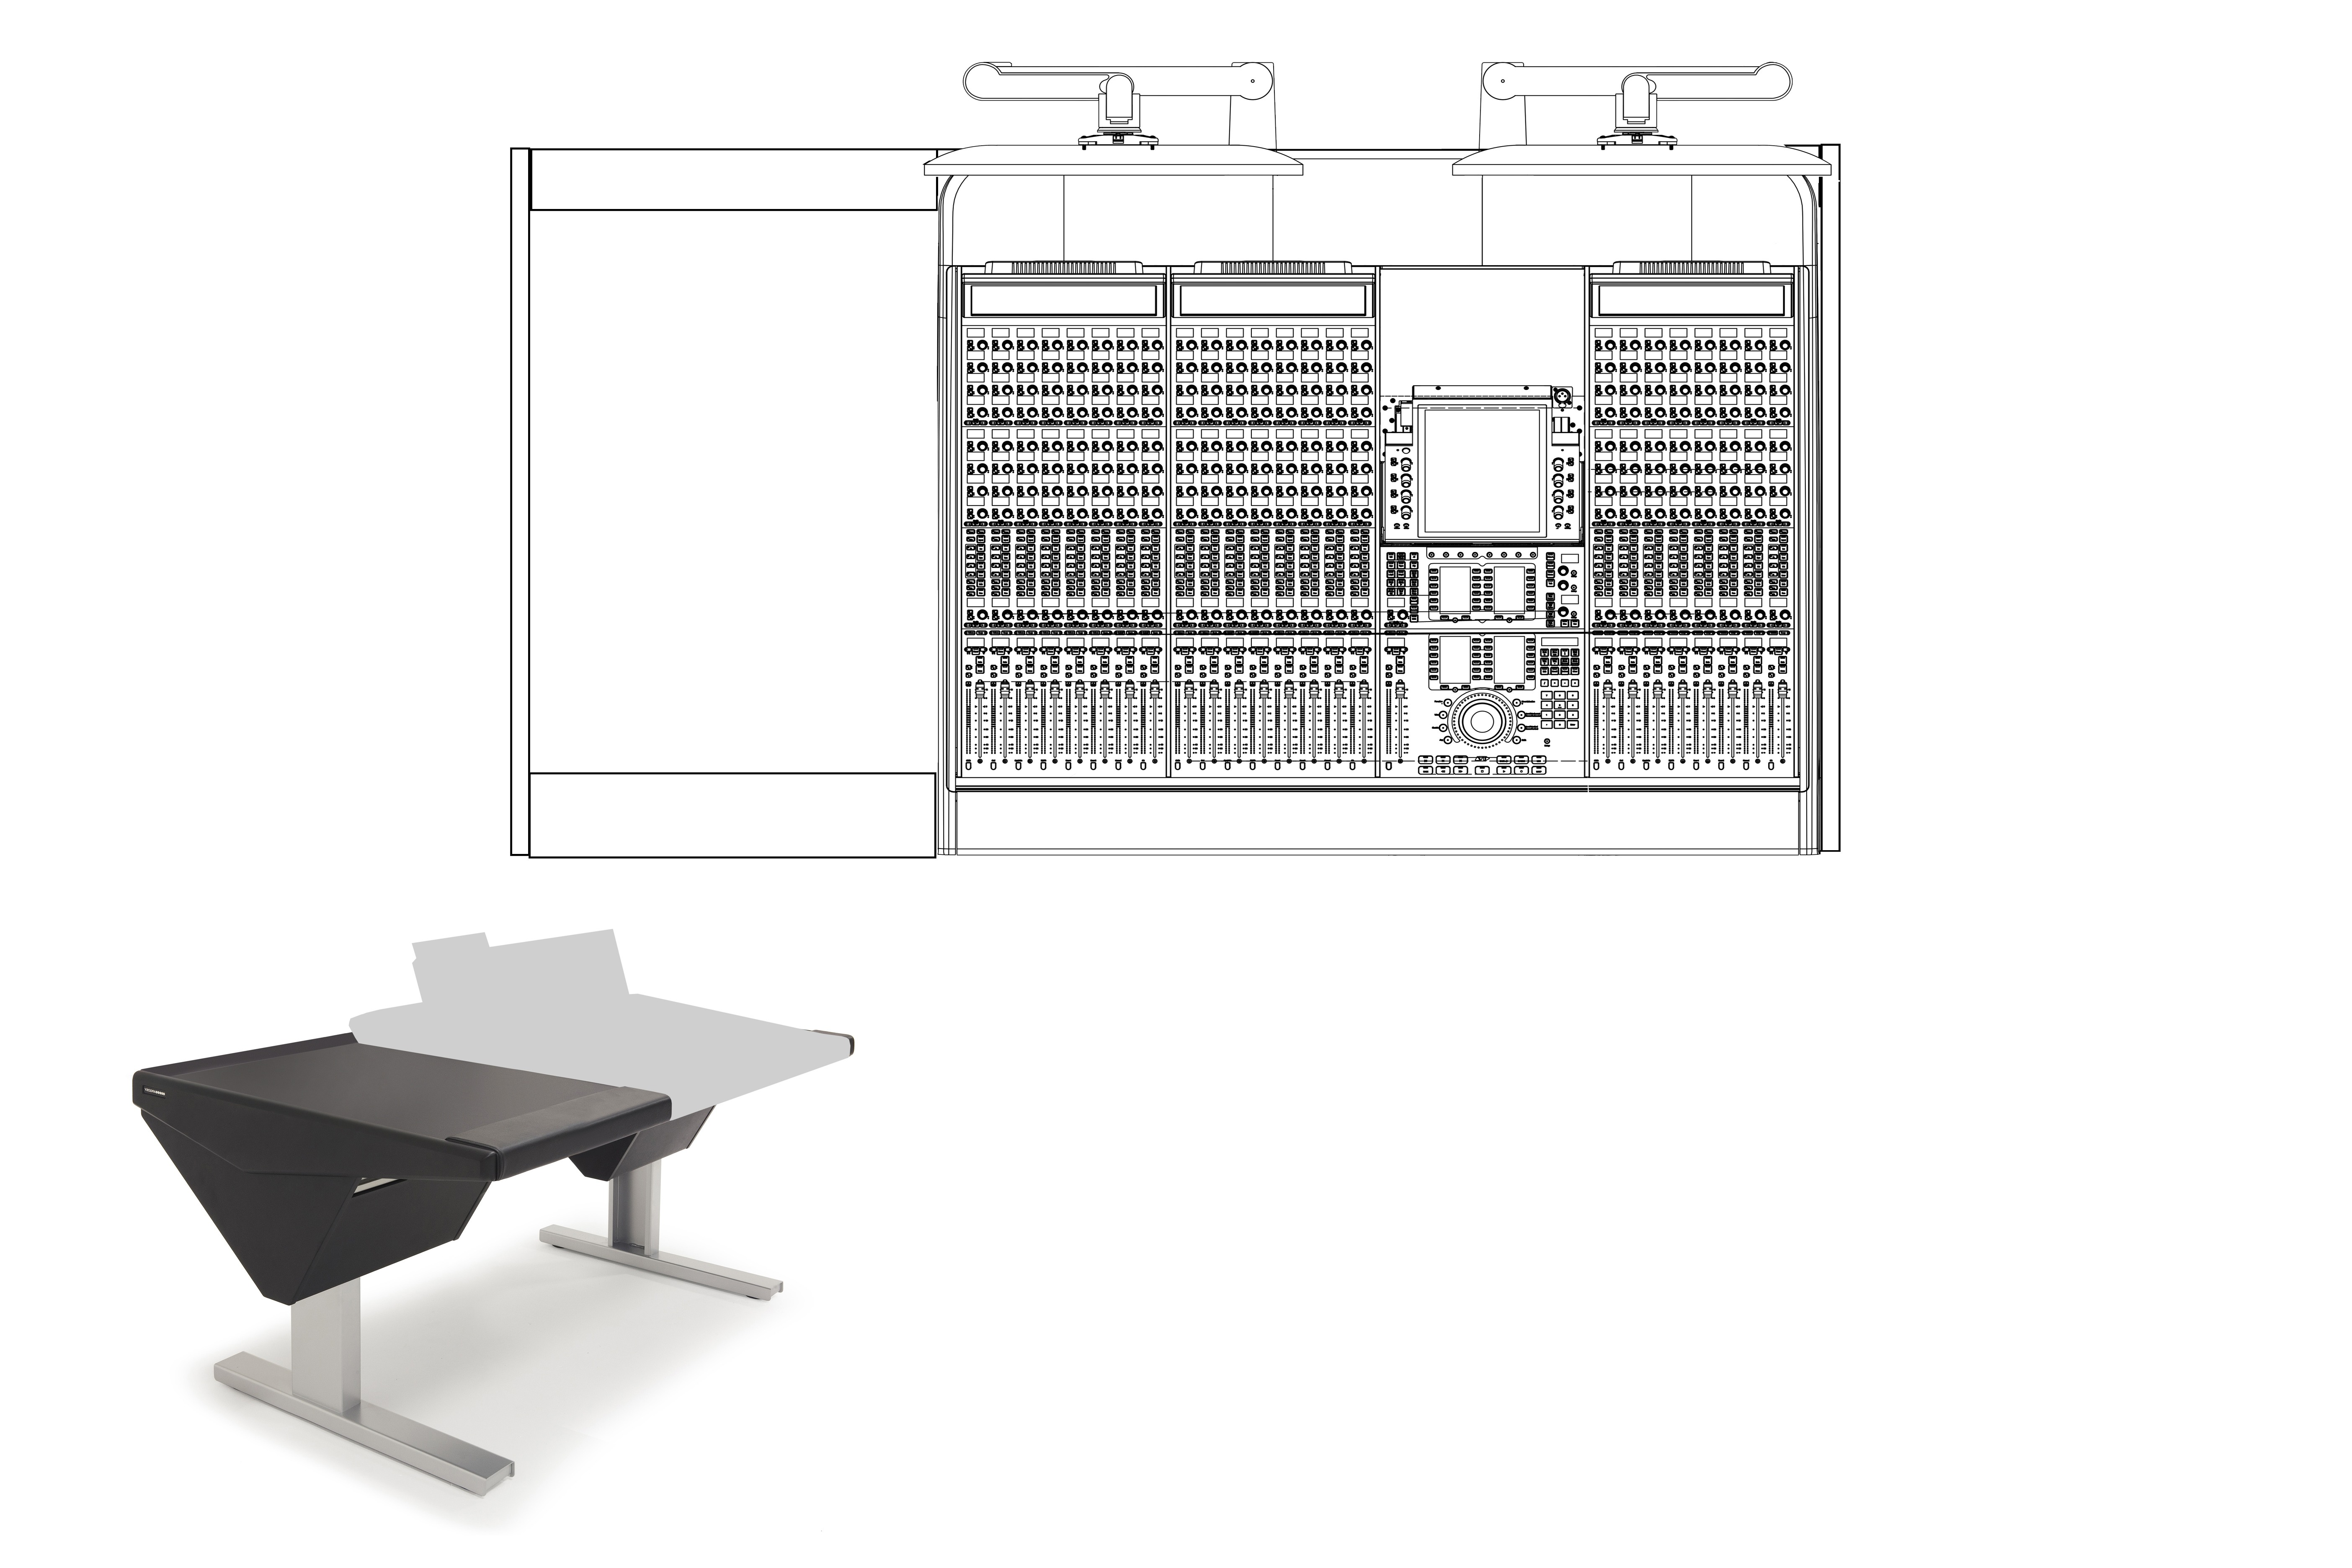 24 Fader System with Desk (L)